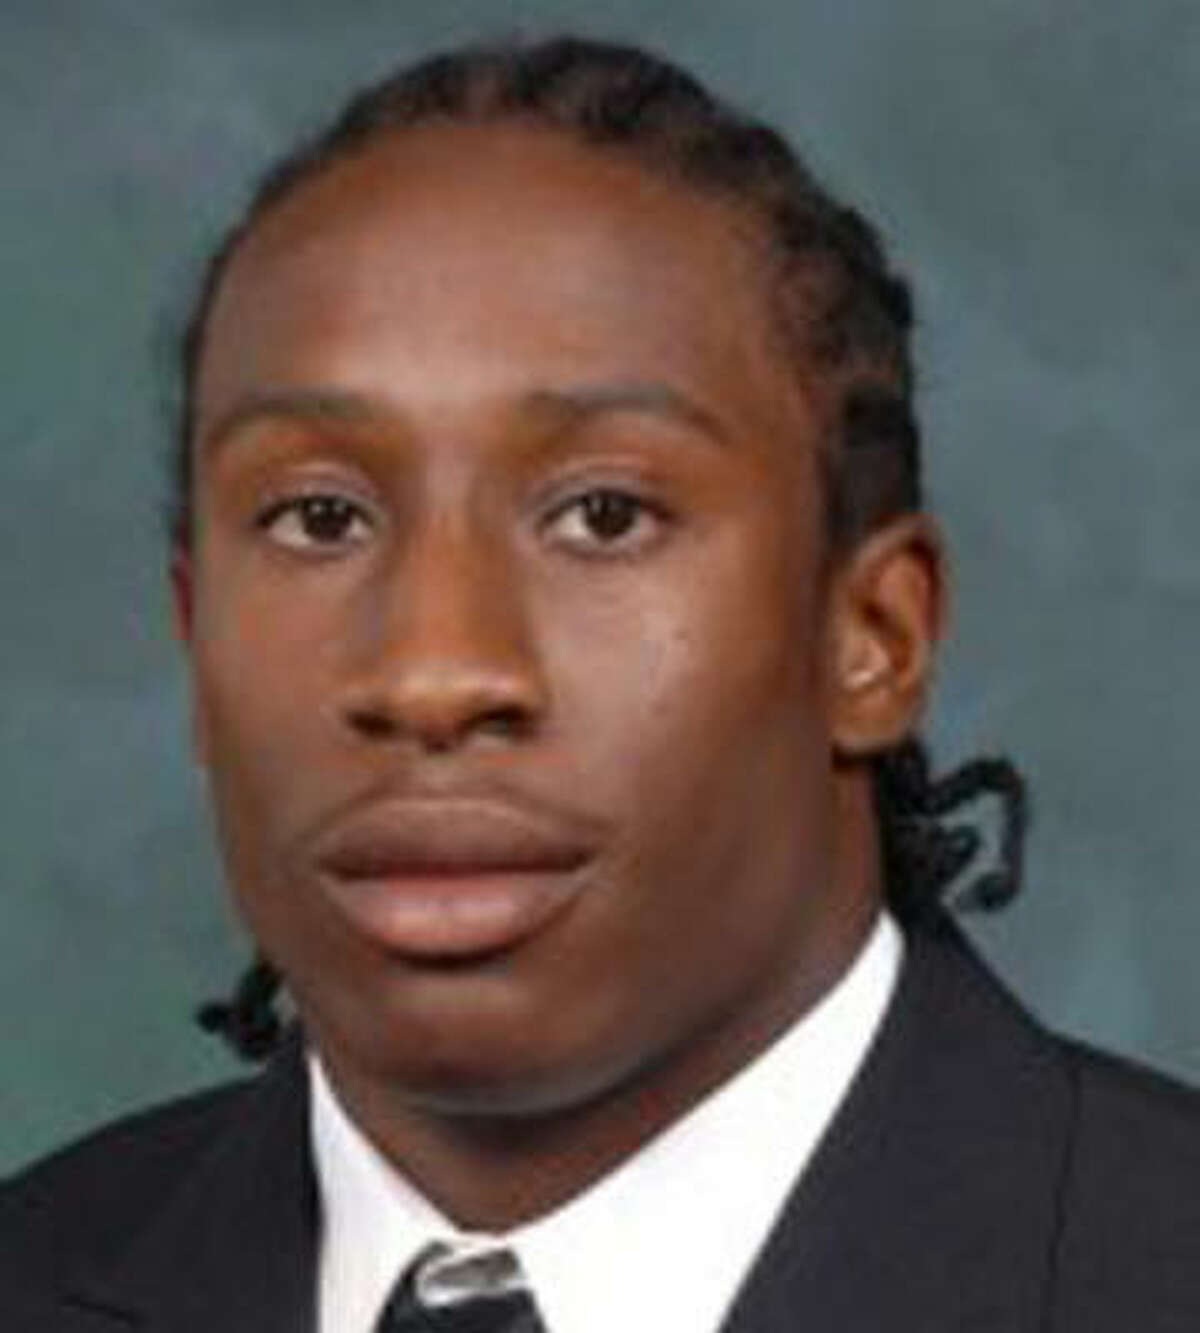 Rice freshman defensive back Dale Lloyd died Monday after collapsing during a workout Sunday afternoon.